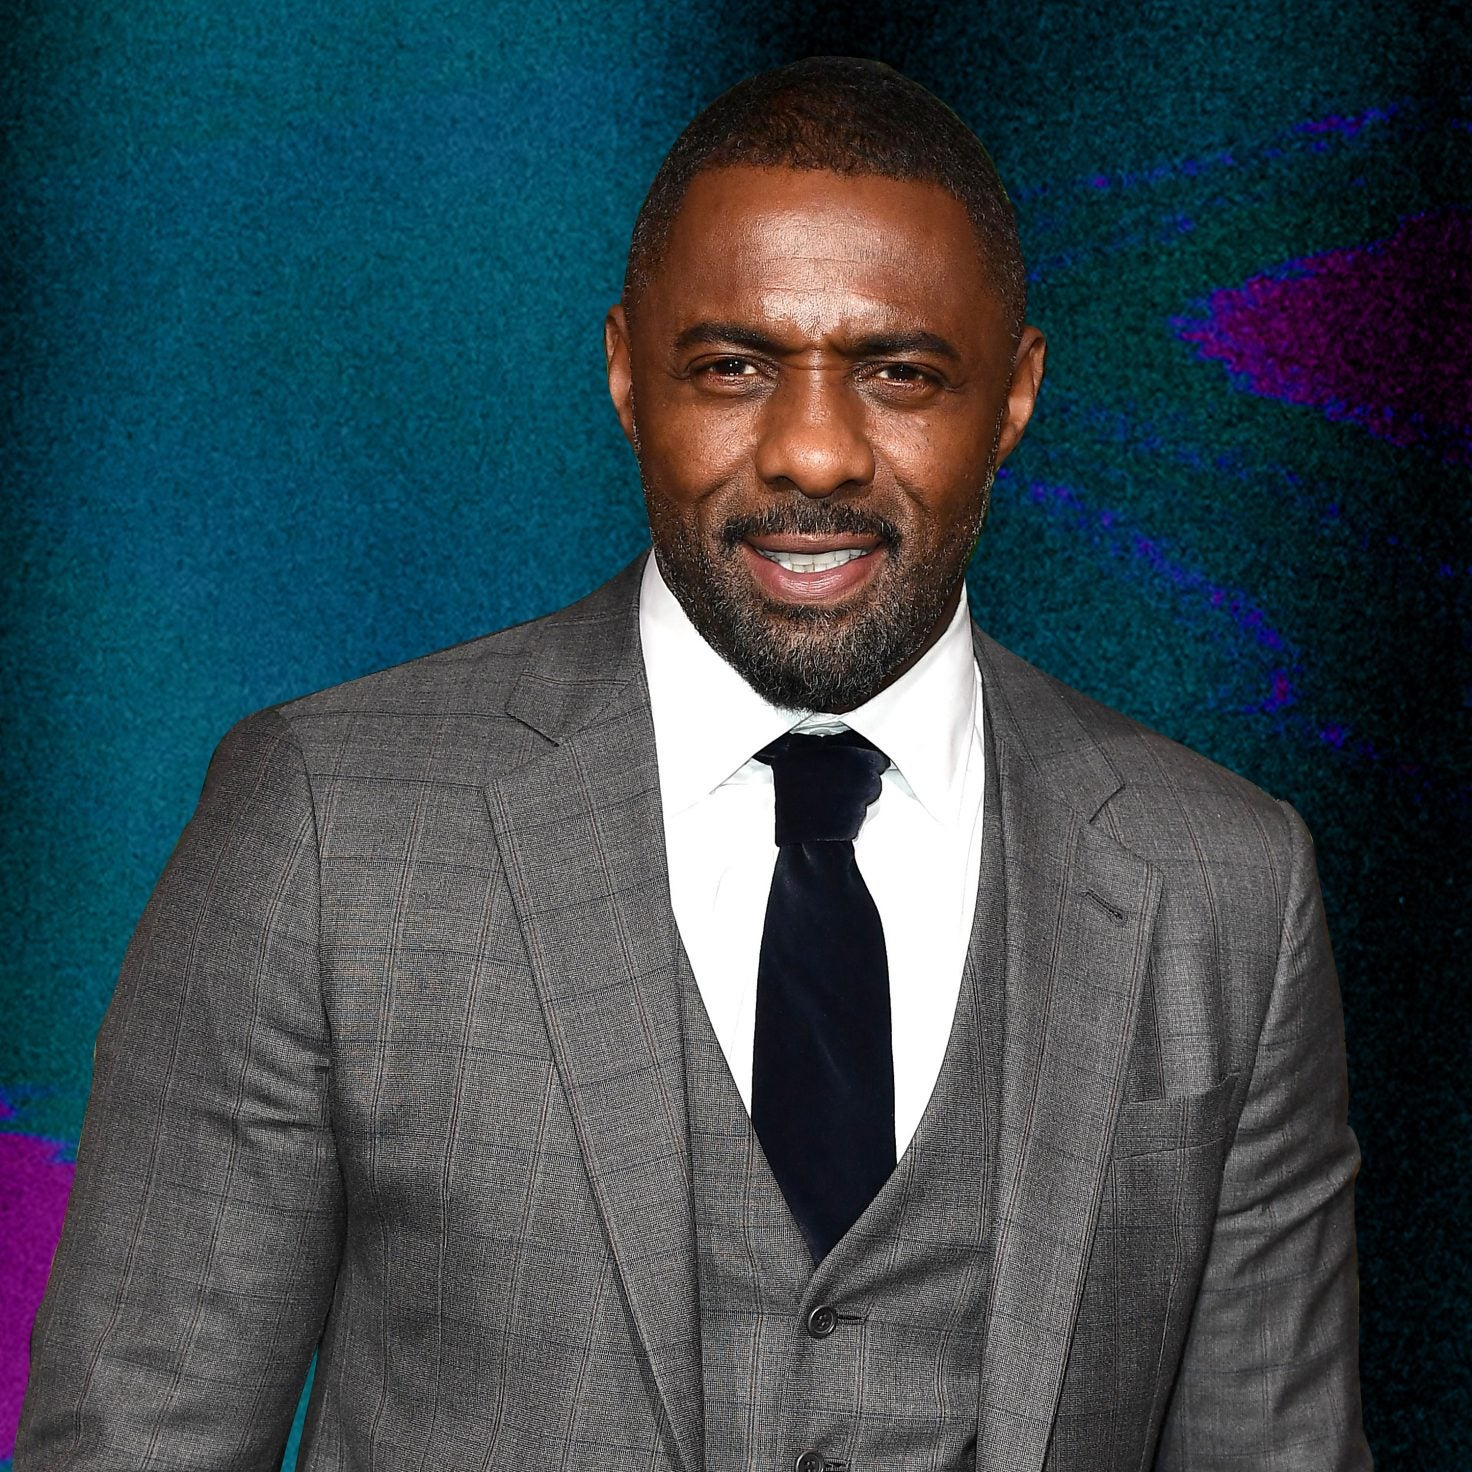 Idris Elba Says He's Taking A Break From Social Media: 'It Makes Me Feel Depressed'